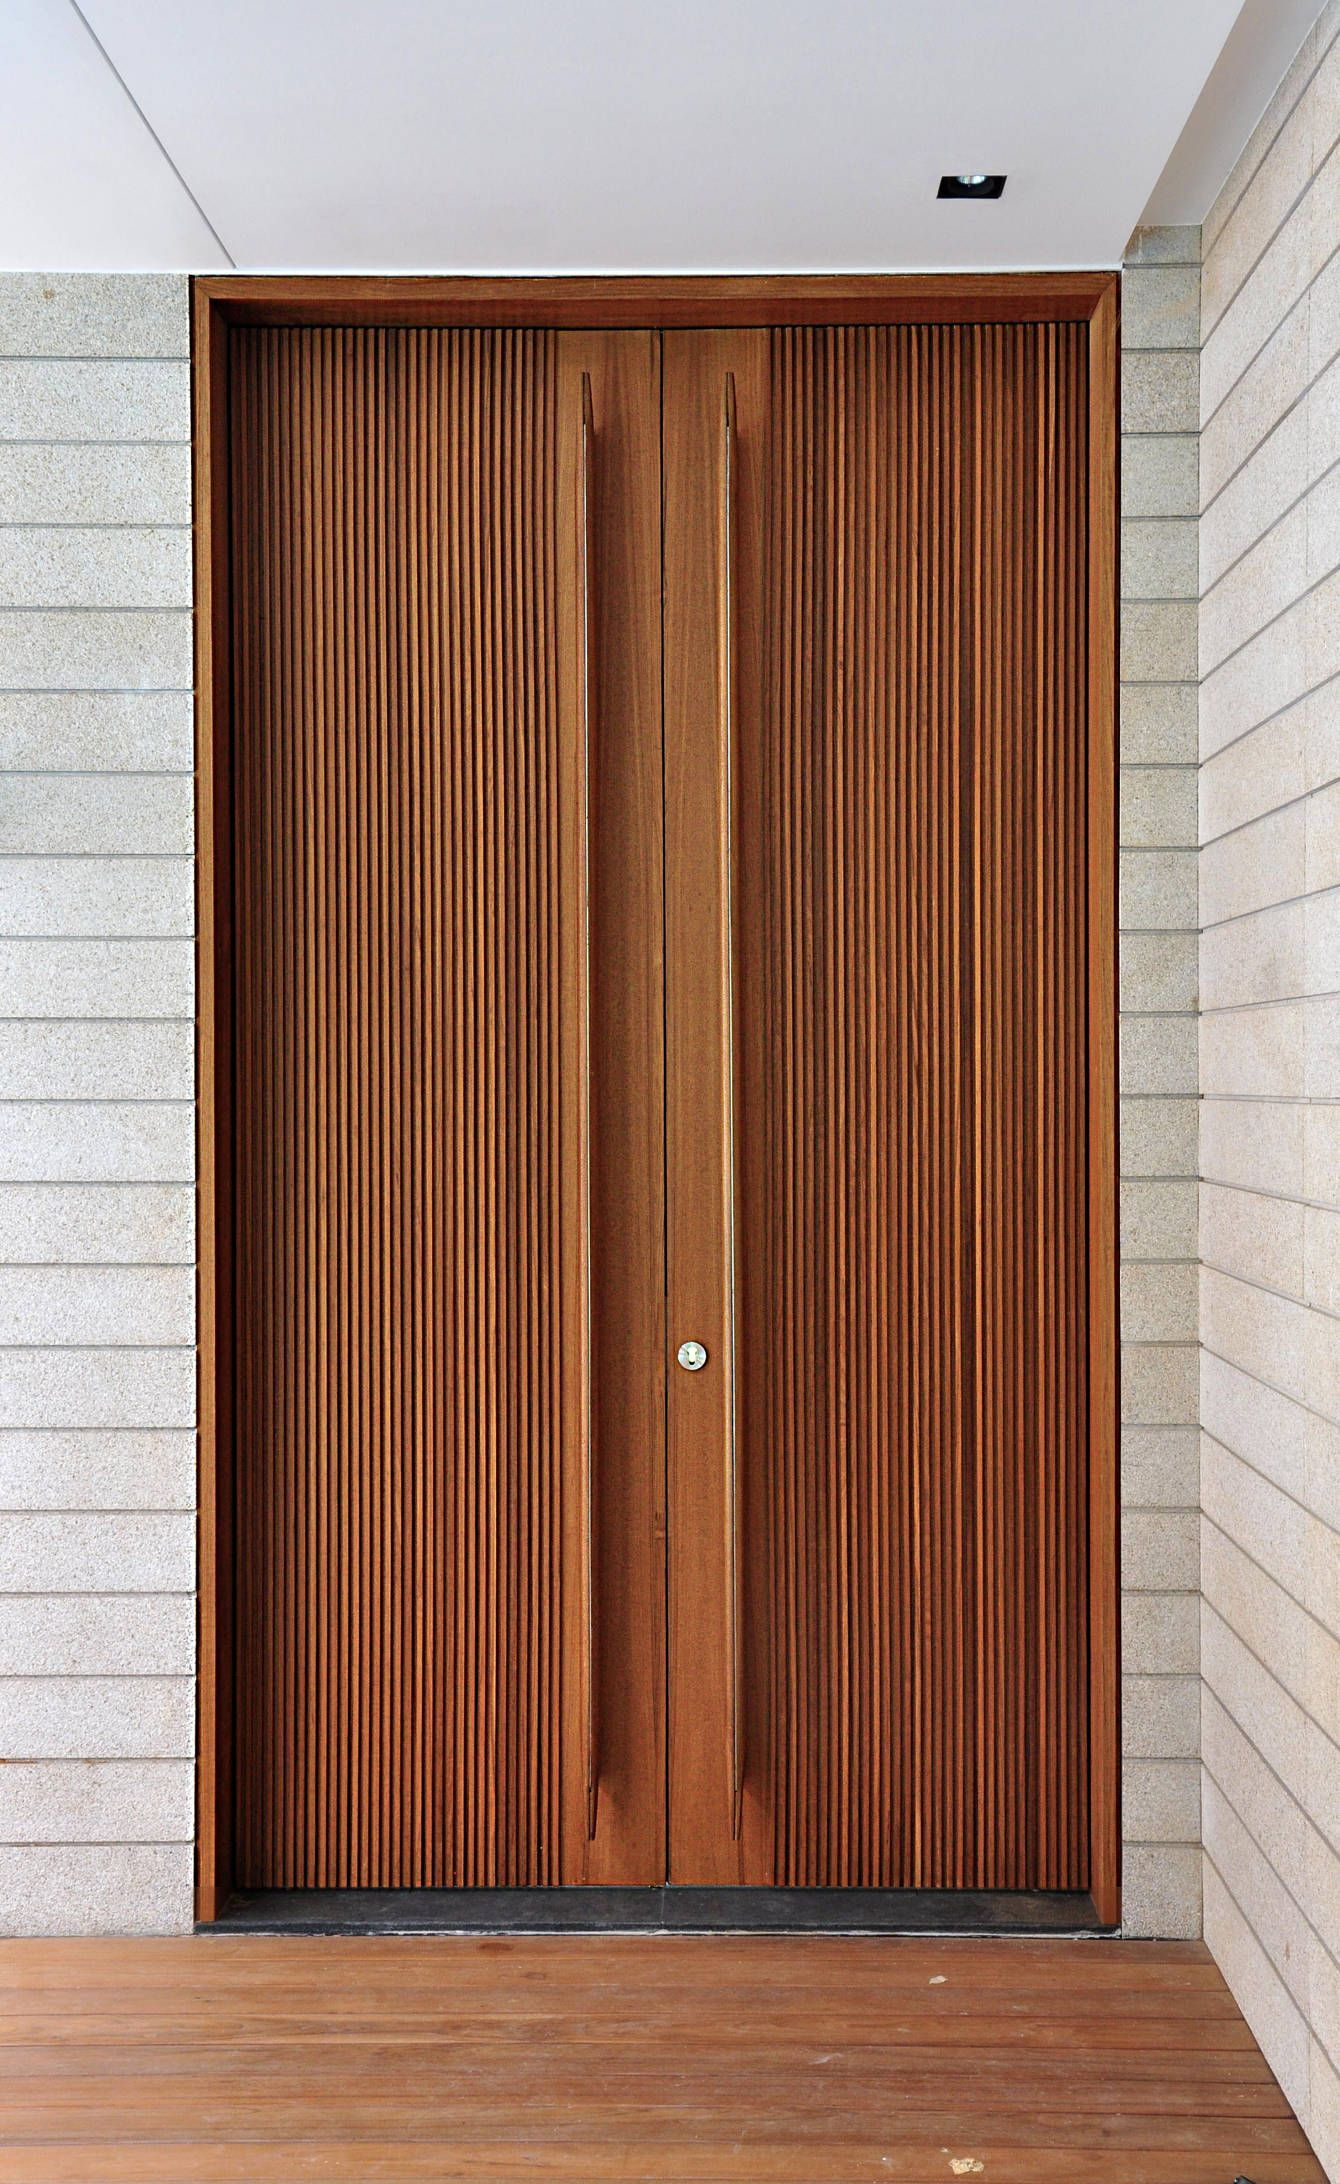 Main Door Design Door Design Modern Wood: C2 Holland Park - He Hanchao